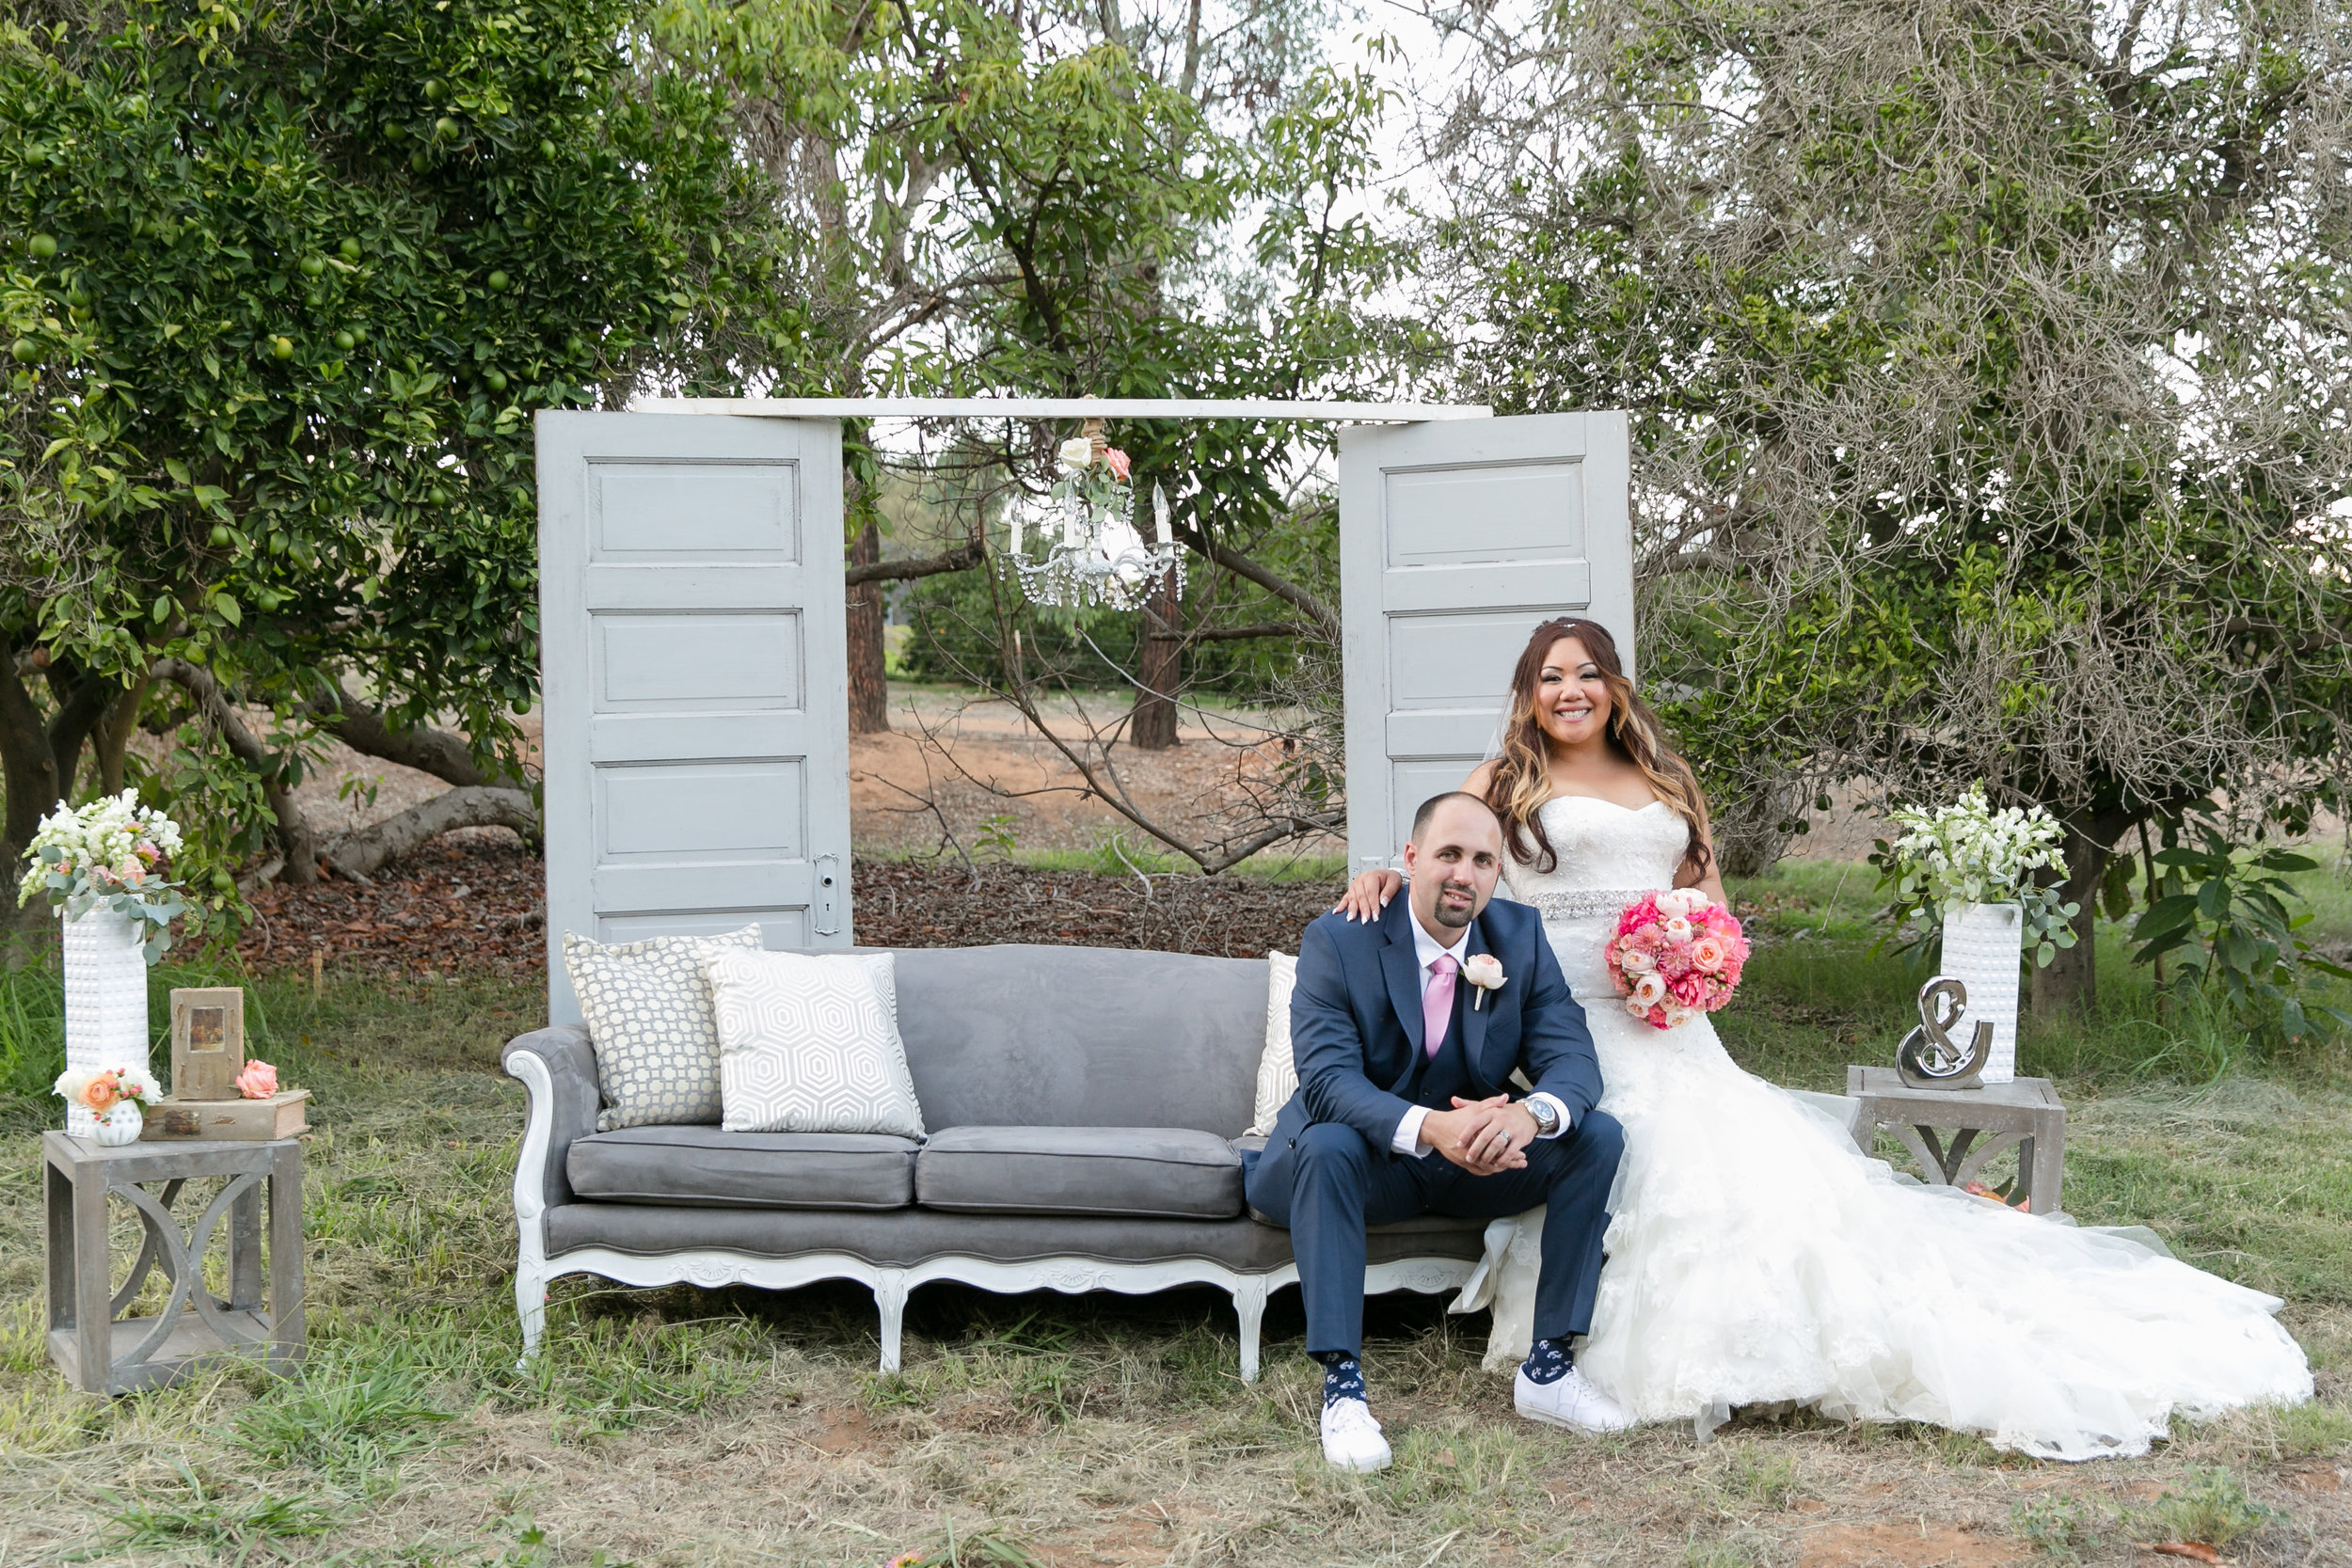 Nautical-Glam Wedding in Coral and Navy | Michelle Garibay Events